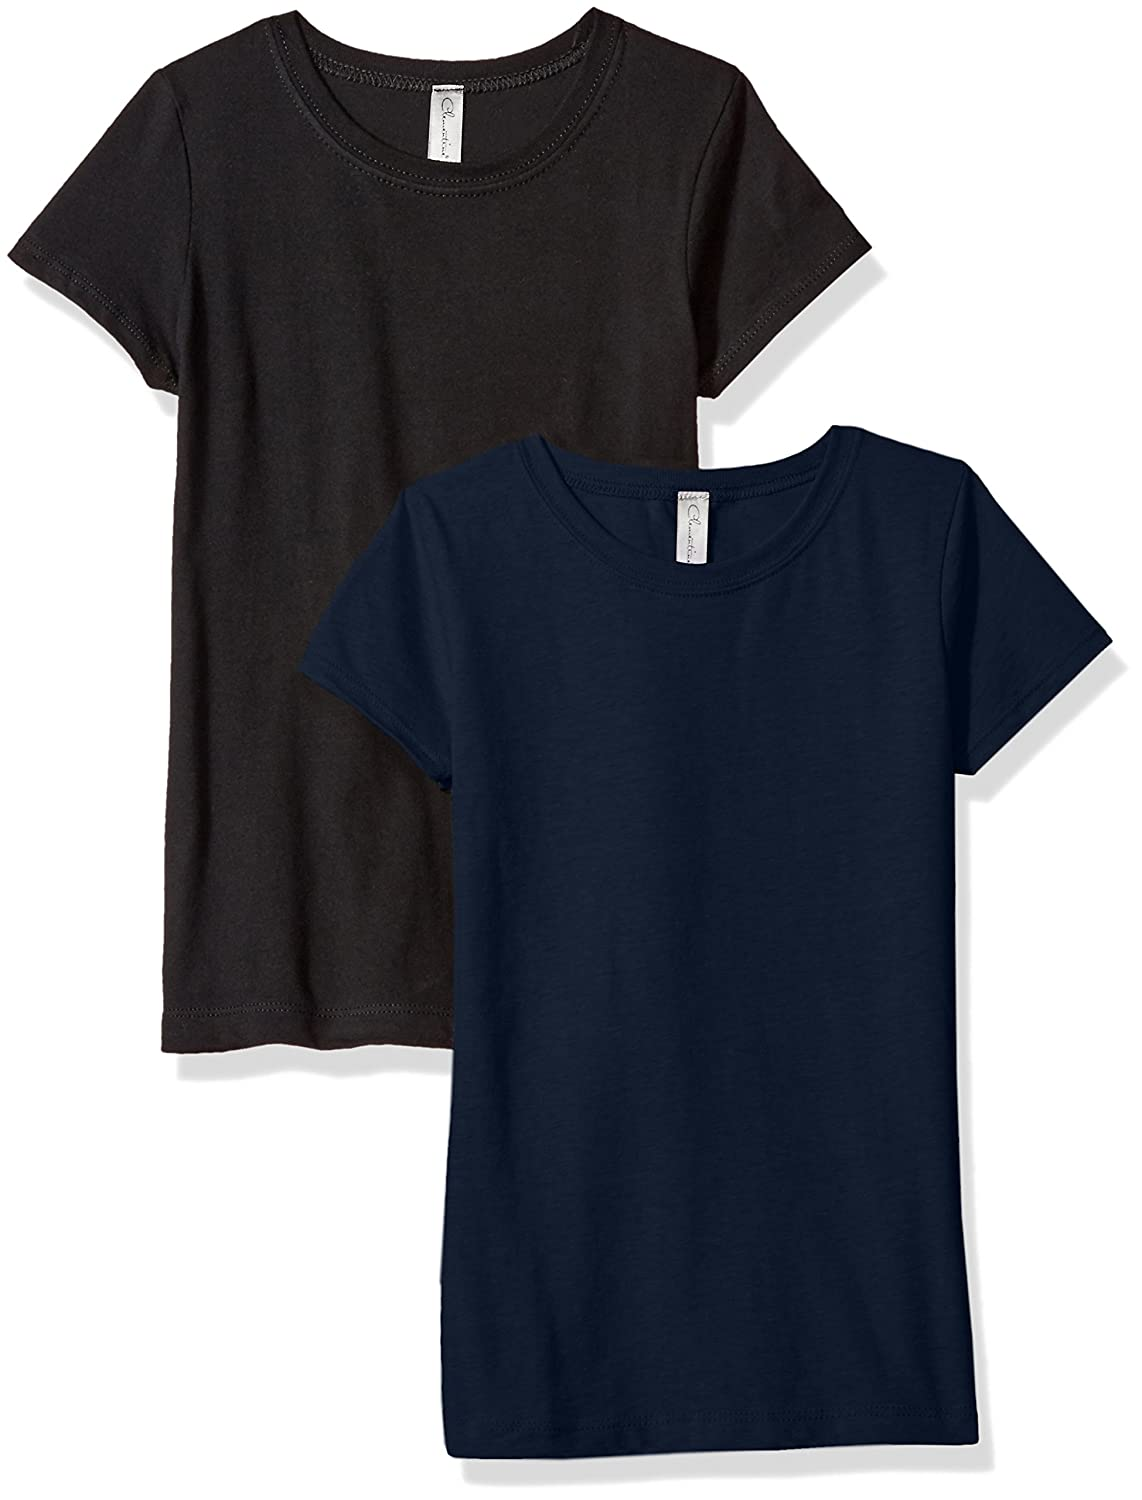 Clementine Apparel Girls' Big Everyday T-Shirts Crew 2-Pack